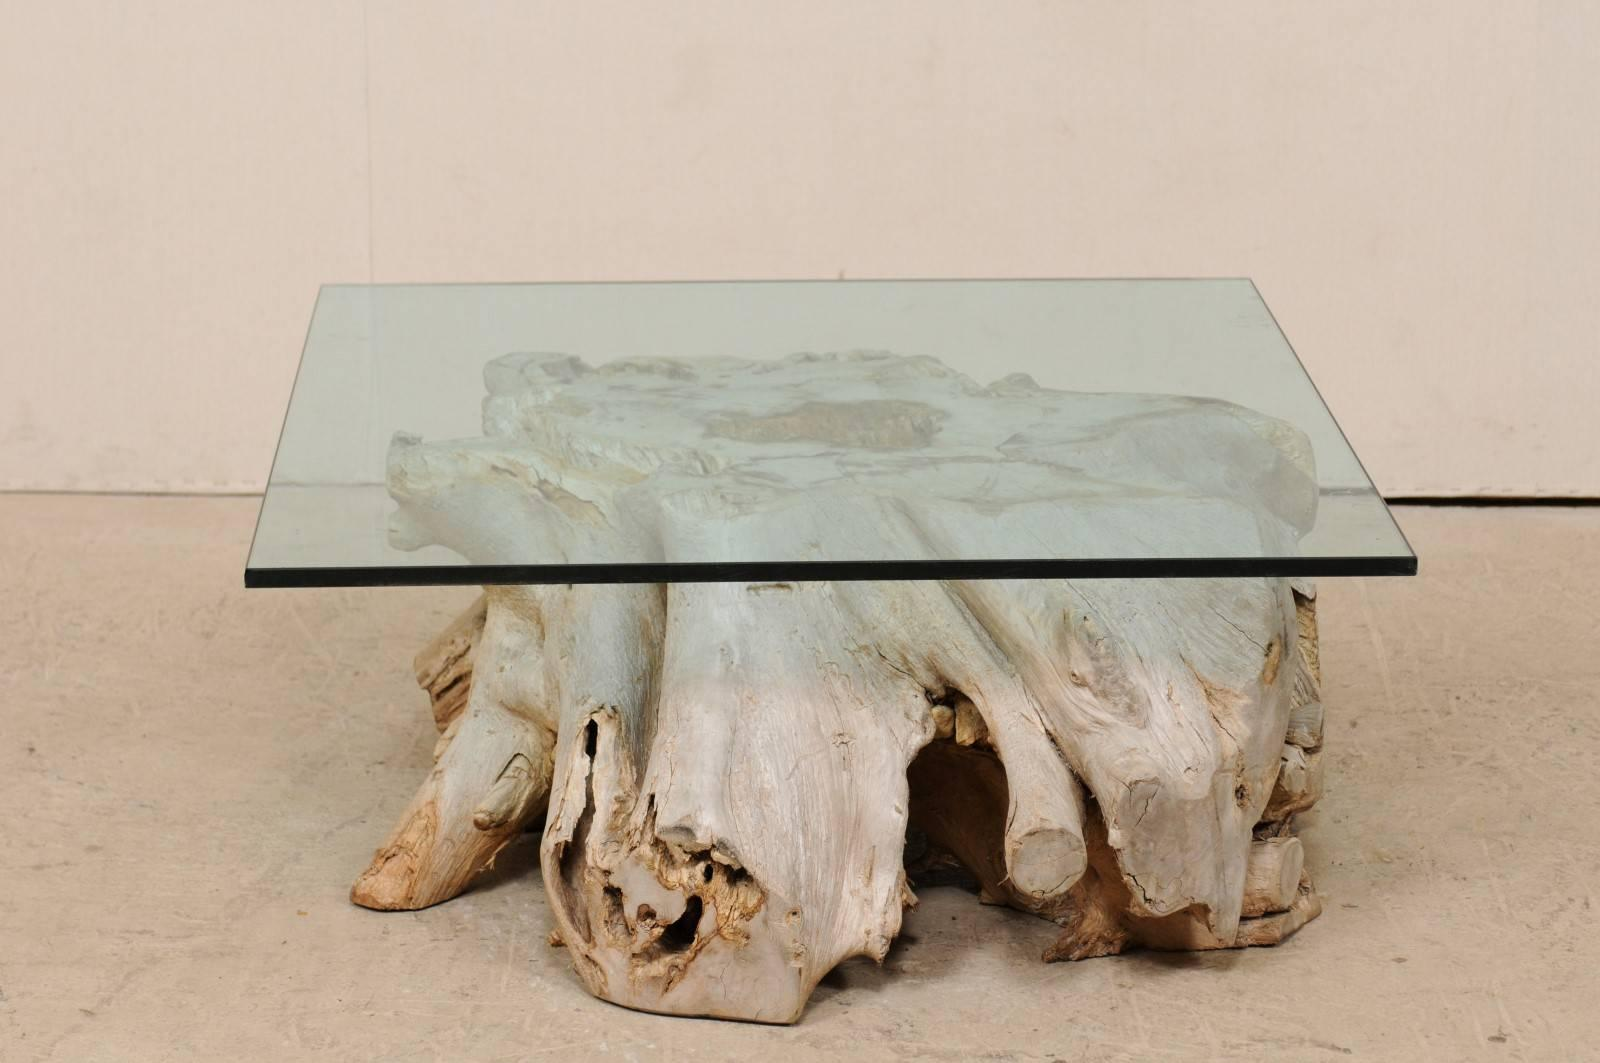 Exceptionnel European Tree Root From 19th Century Fashioned Into Coffee Table With Glass  Top